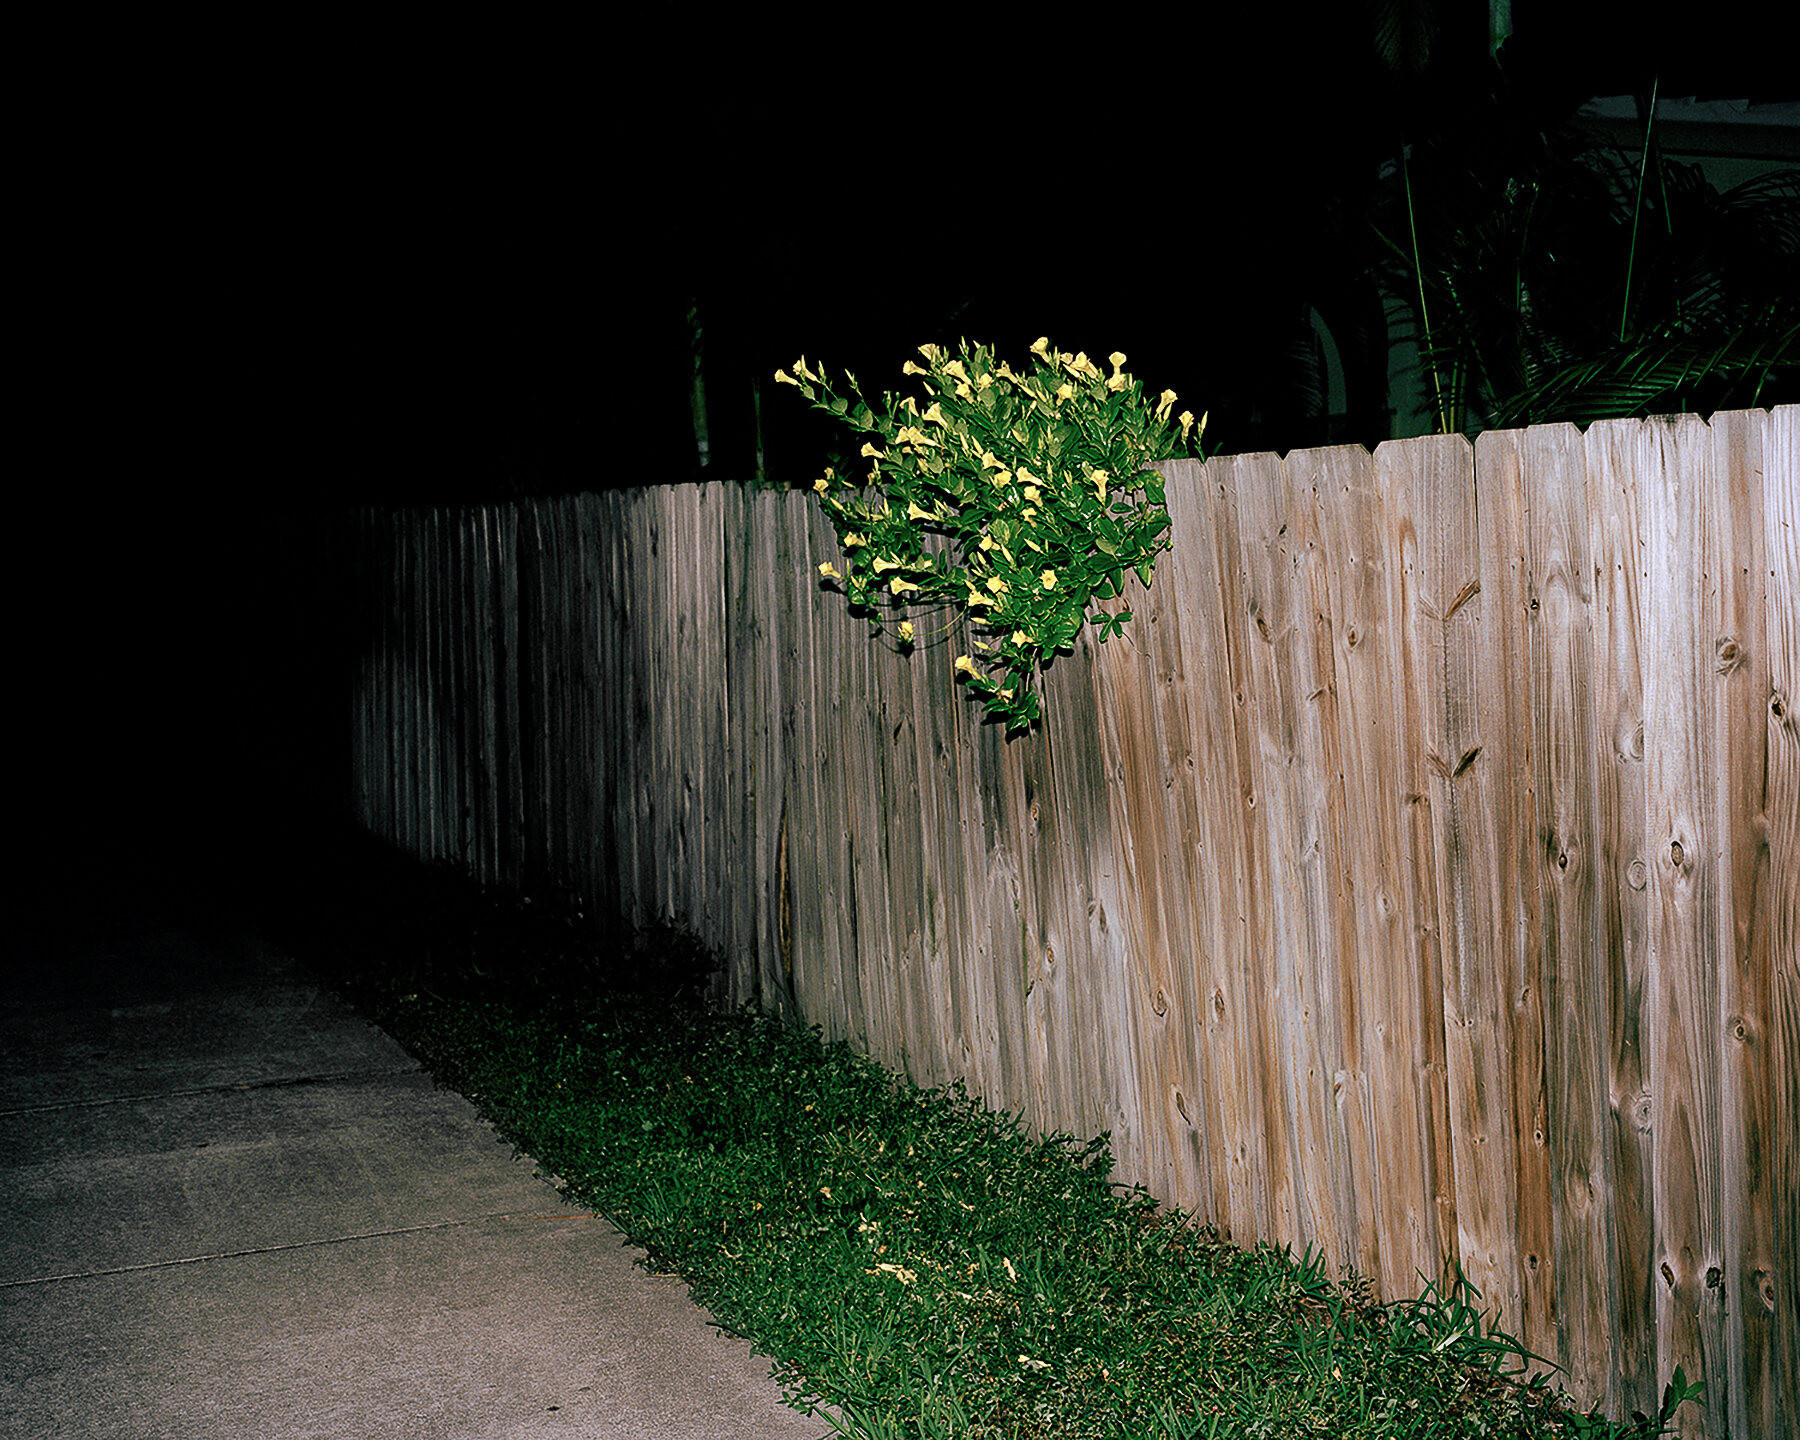 15_flowers on fence.jpg